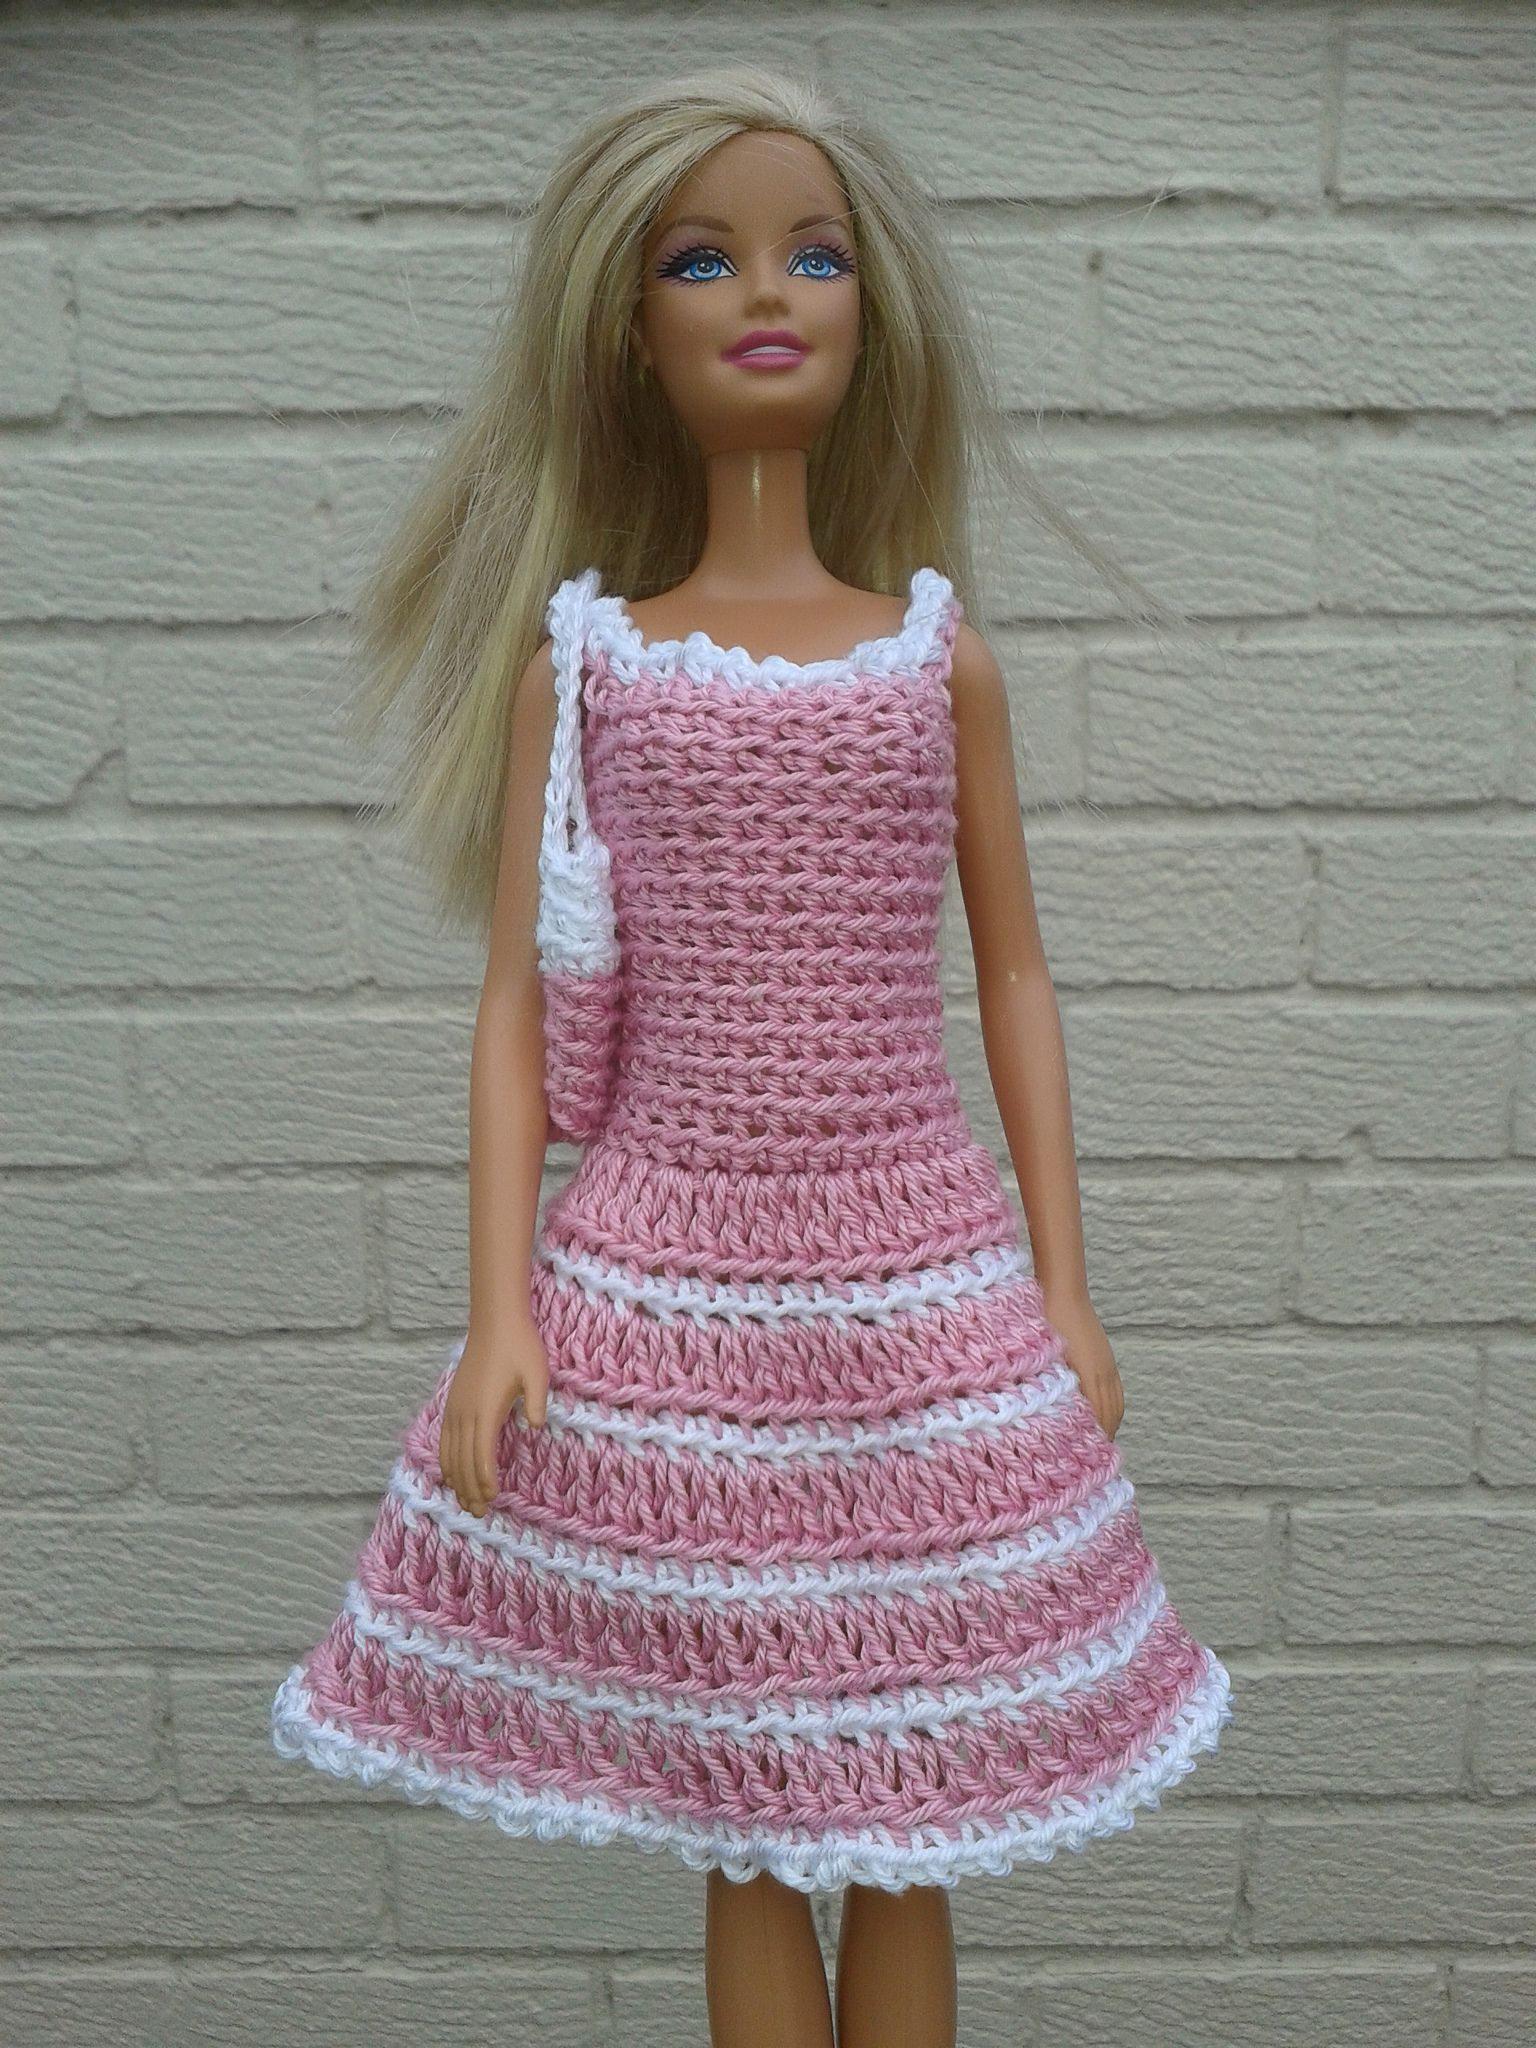 barbies crochet dress and bag | Pinterest | Puppenkleidung häkeln ...